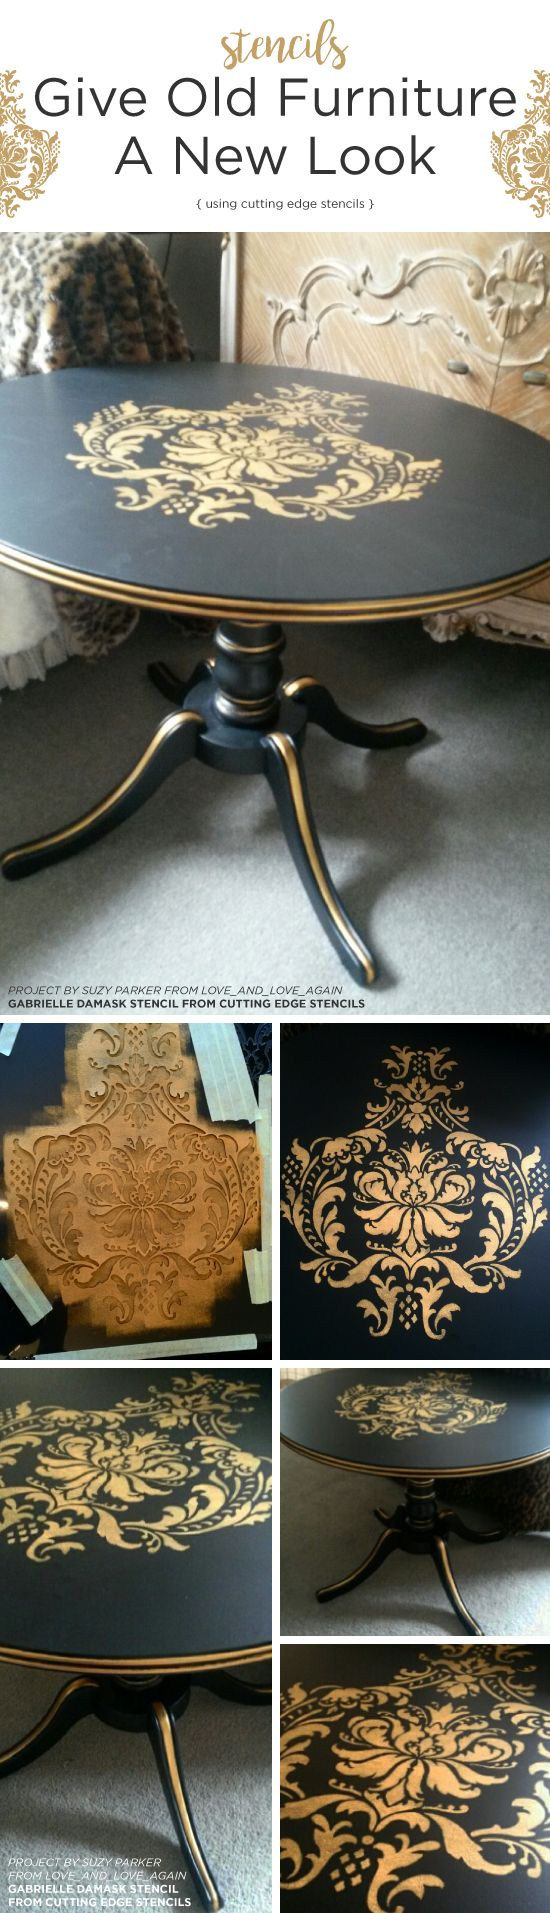 Cutting Edge Stencils shares a DIY painted and stenciled table project using the Gabrielle Damask Stencil. http://www.cuttingedgestencils.com/damask-stencil-3.html